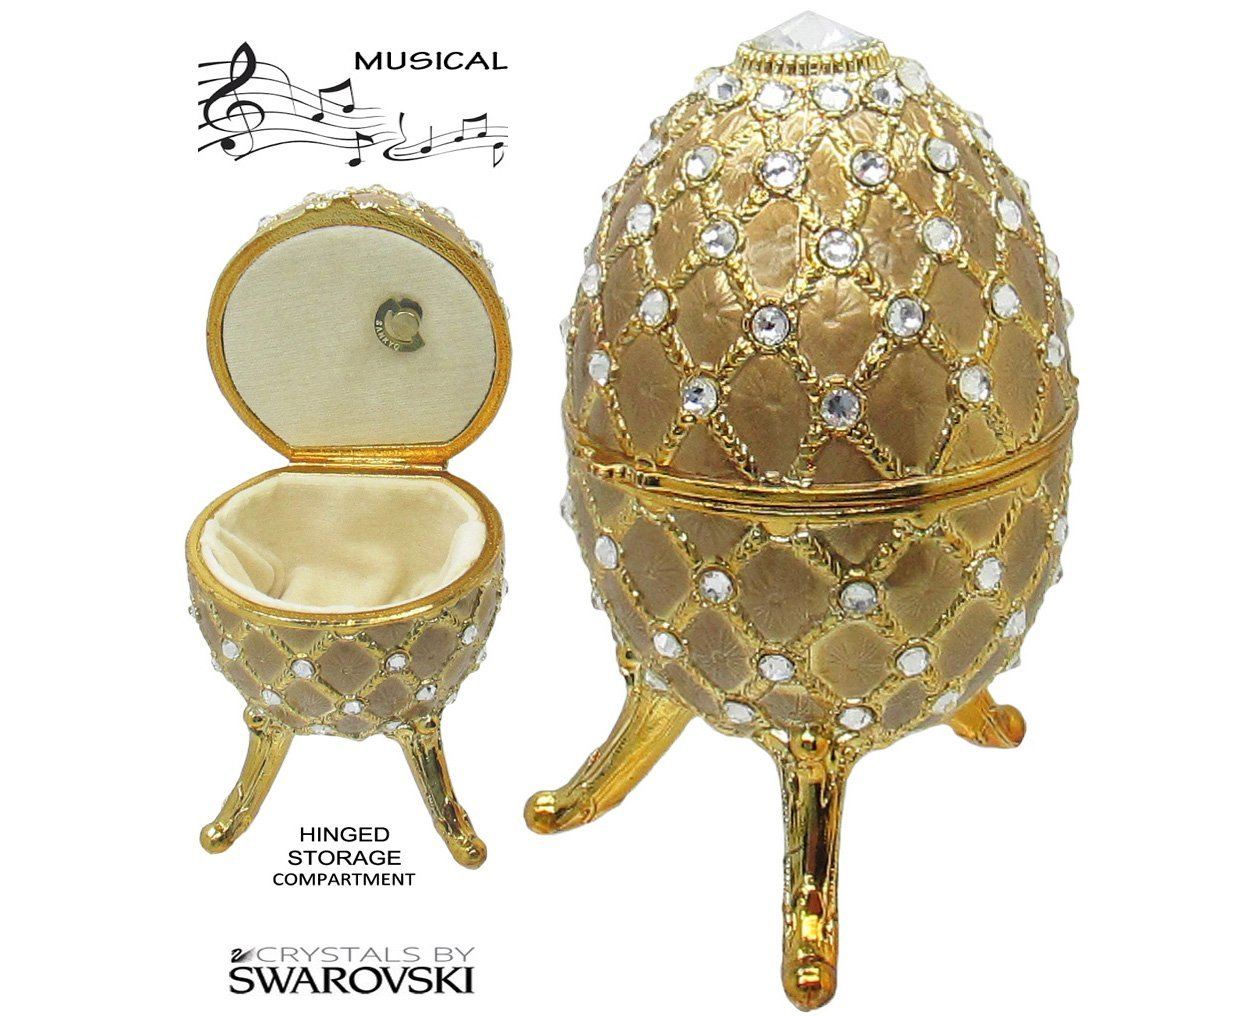 Primary image for Musical Jewelry and Trinket Box with Swarovski Crystals, Gold/Gold